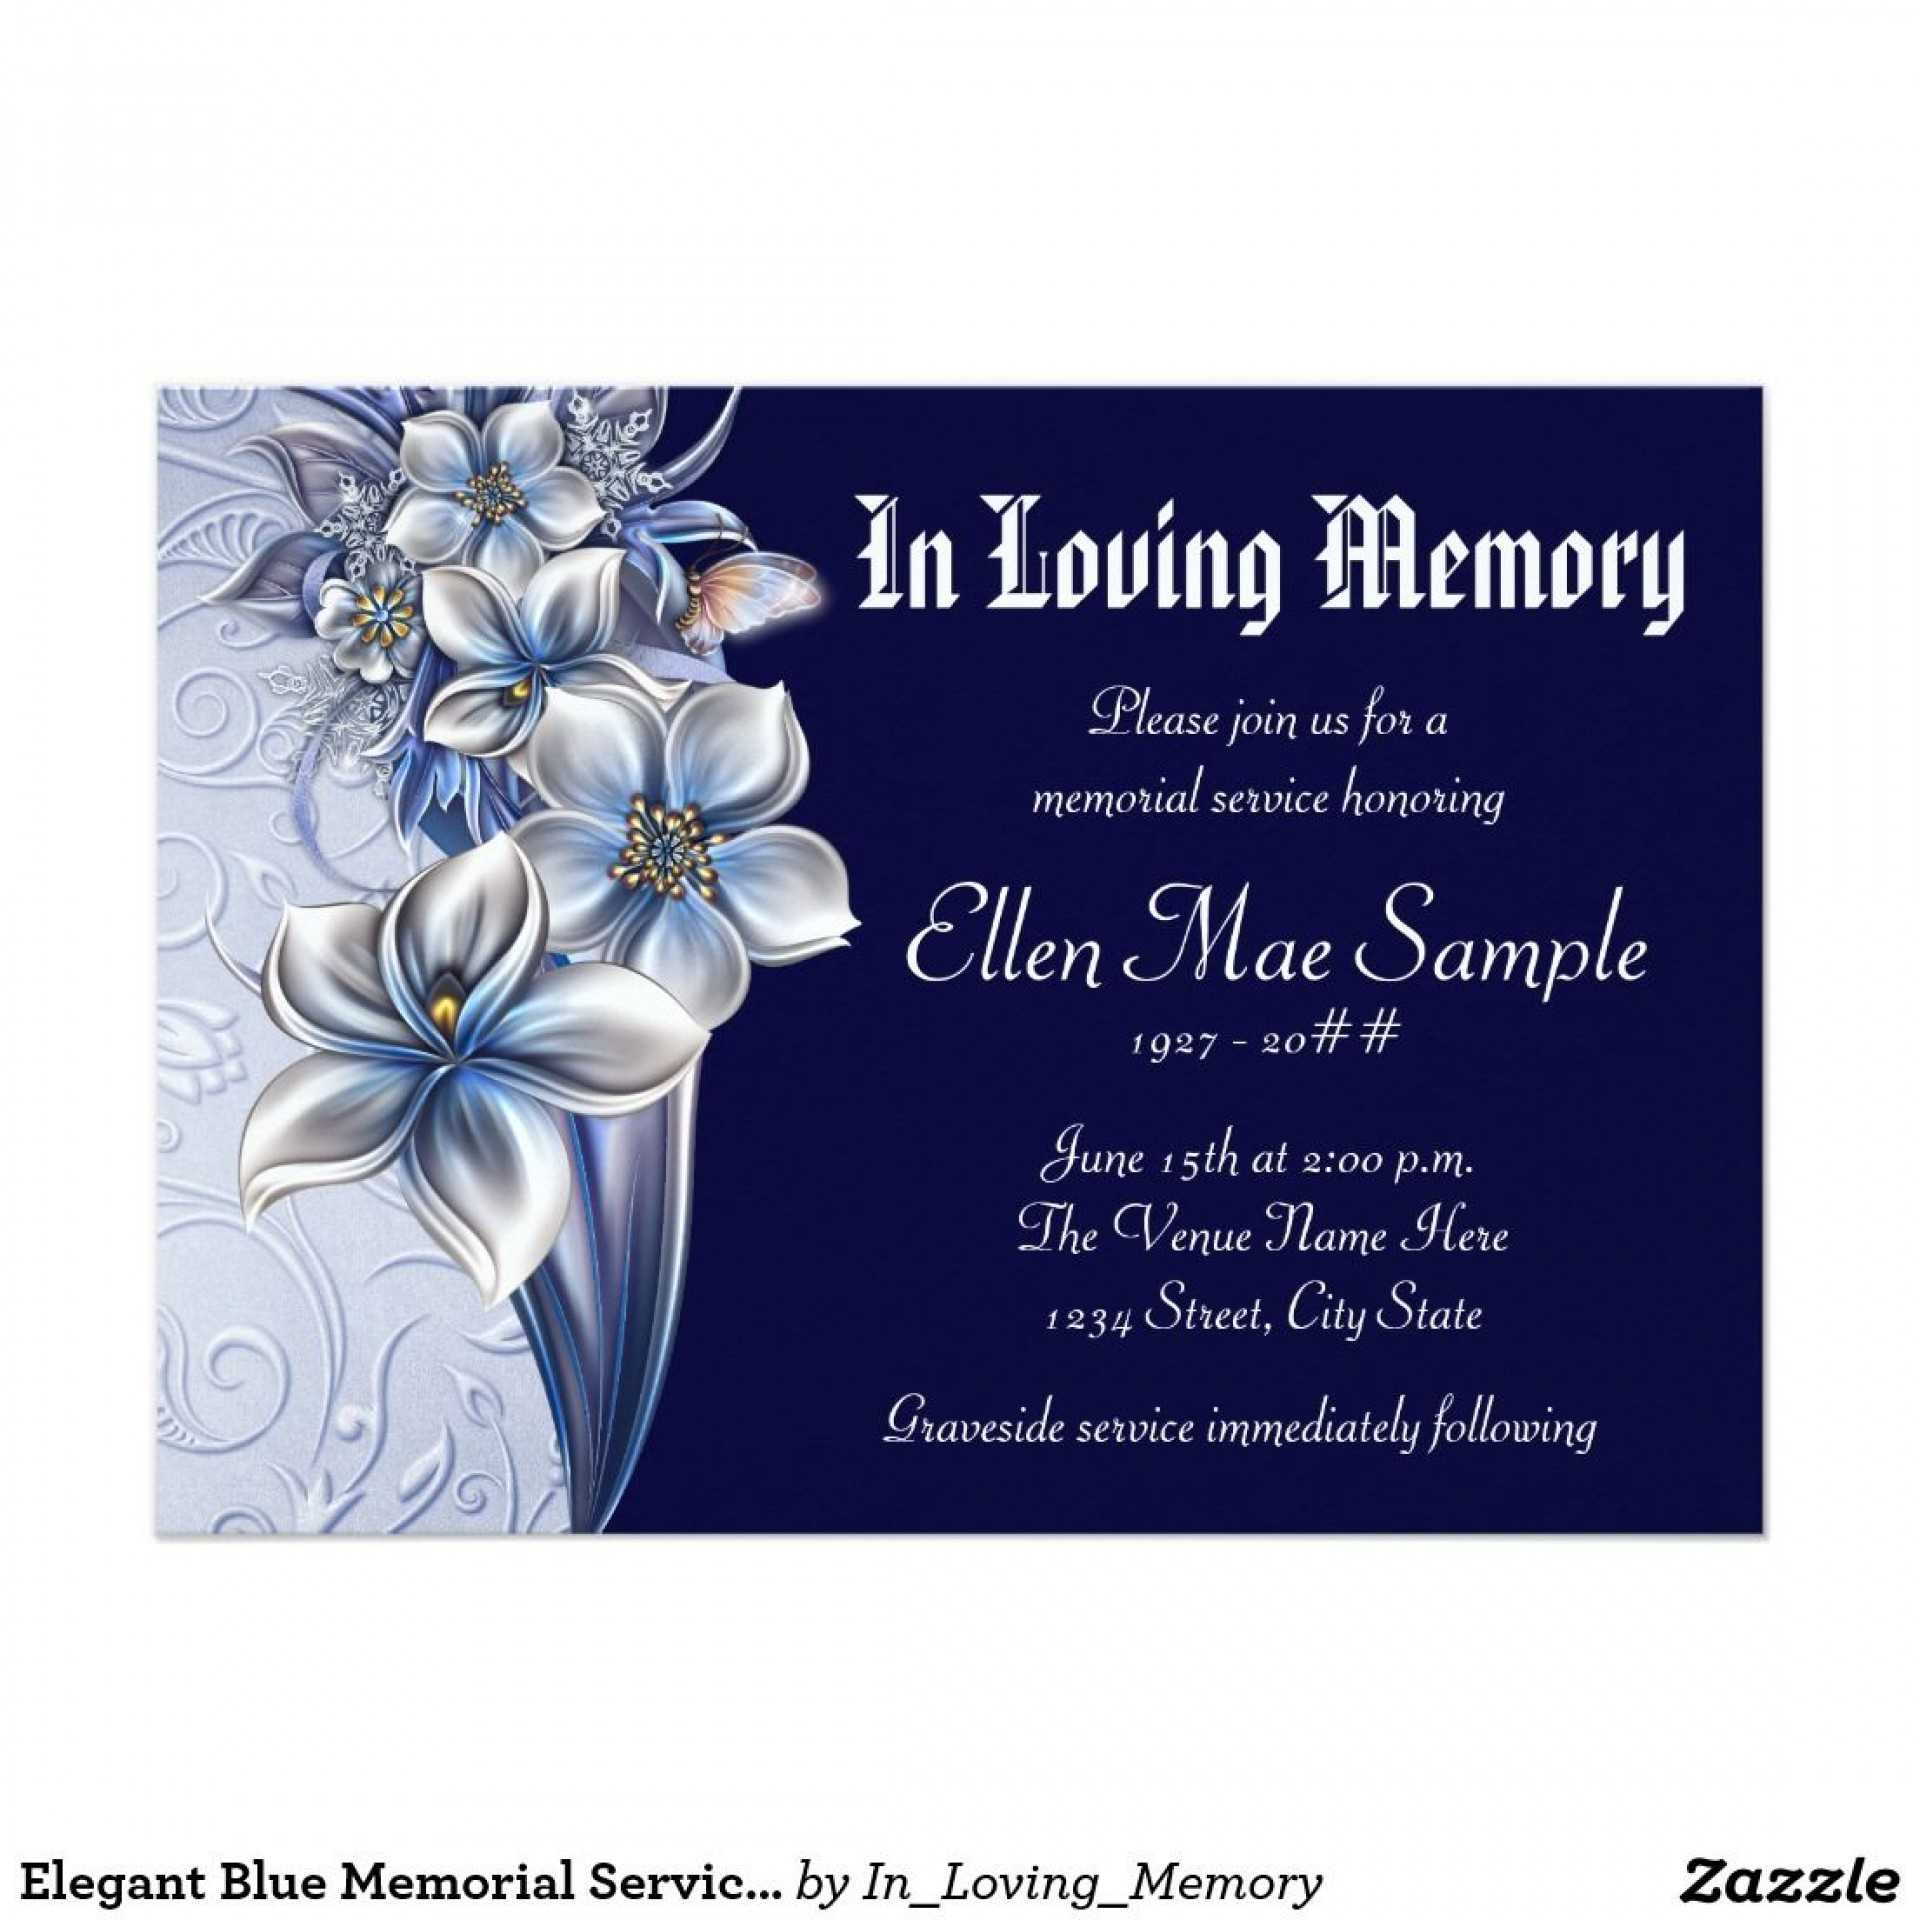 010 Funeral Invitation Template Free Incredible Ideas Regarding Funeral Invitation Card Template